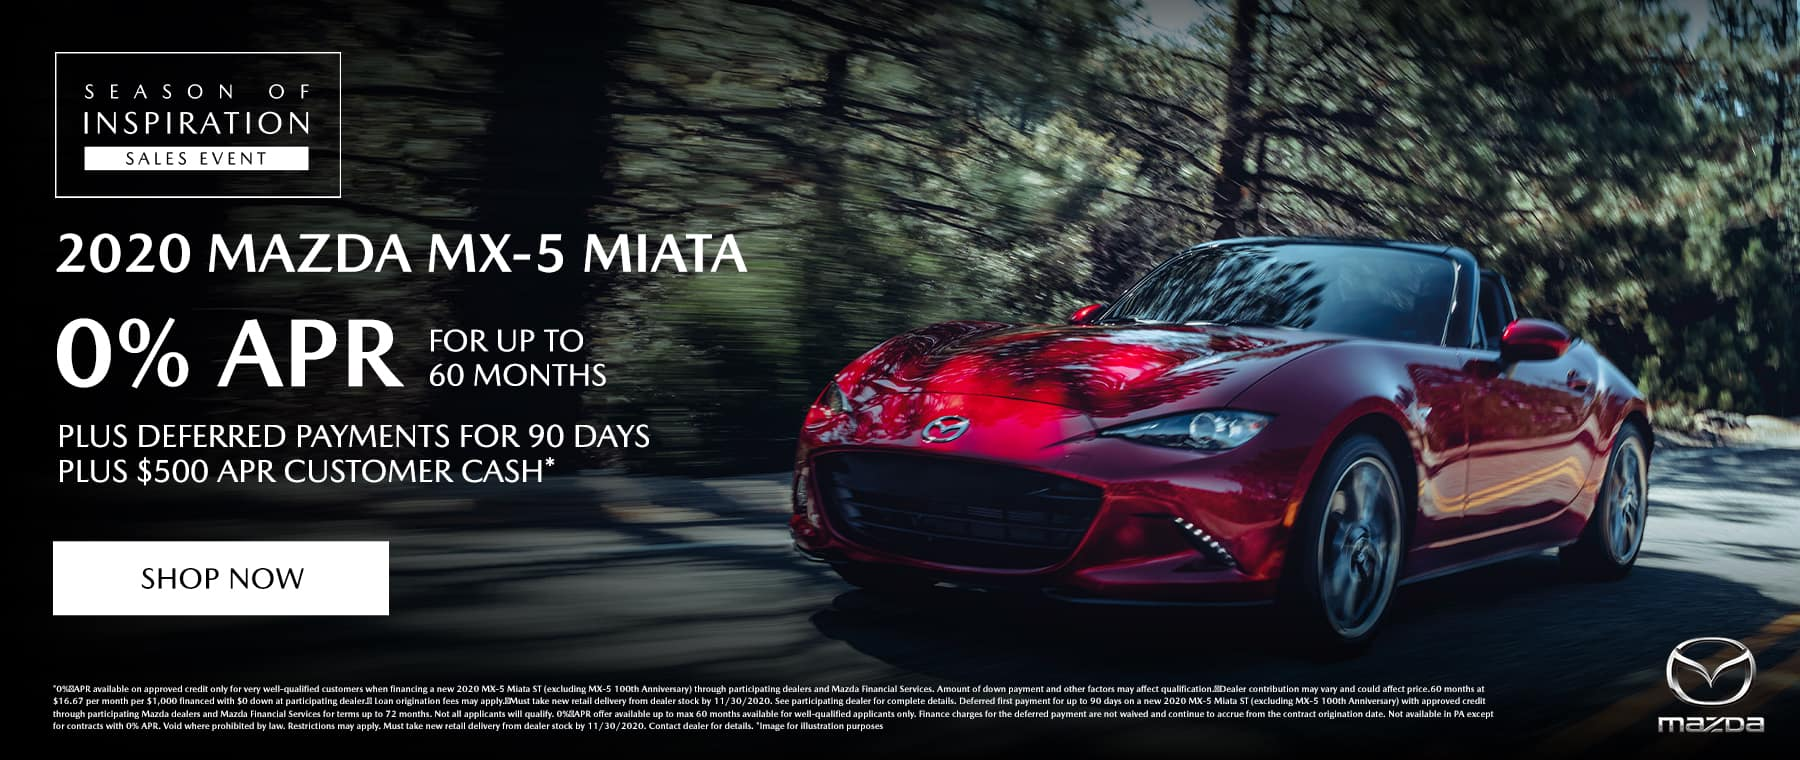 2020 Mazda MX-5 Miata 0% APR for up to 60 MONTHS PLUS DEFERRED PAYMENTS FOR 90 DAYS PLUS $500 APR CUSTOMER CASH